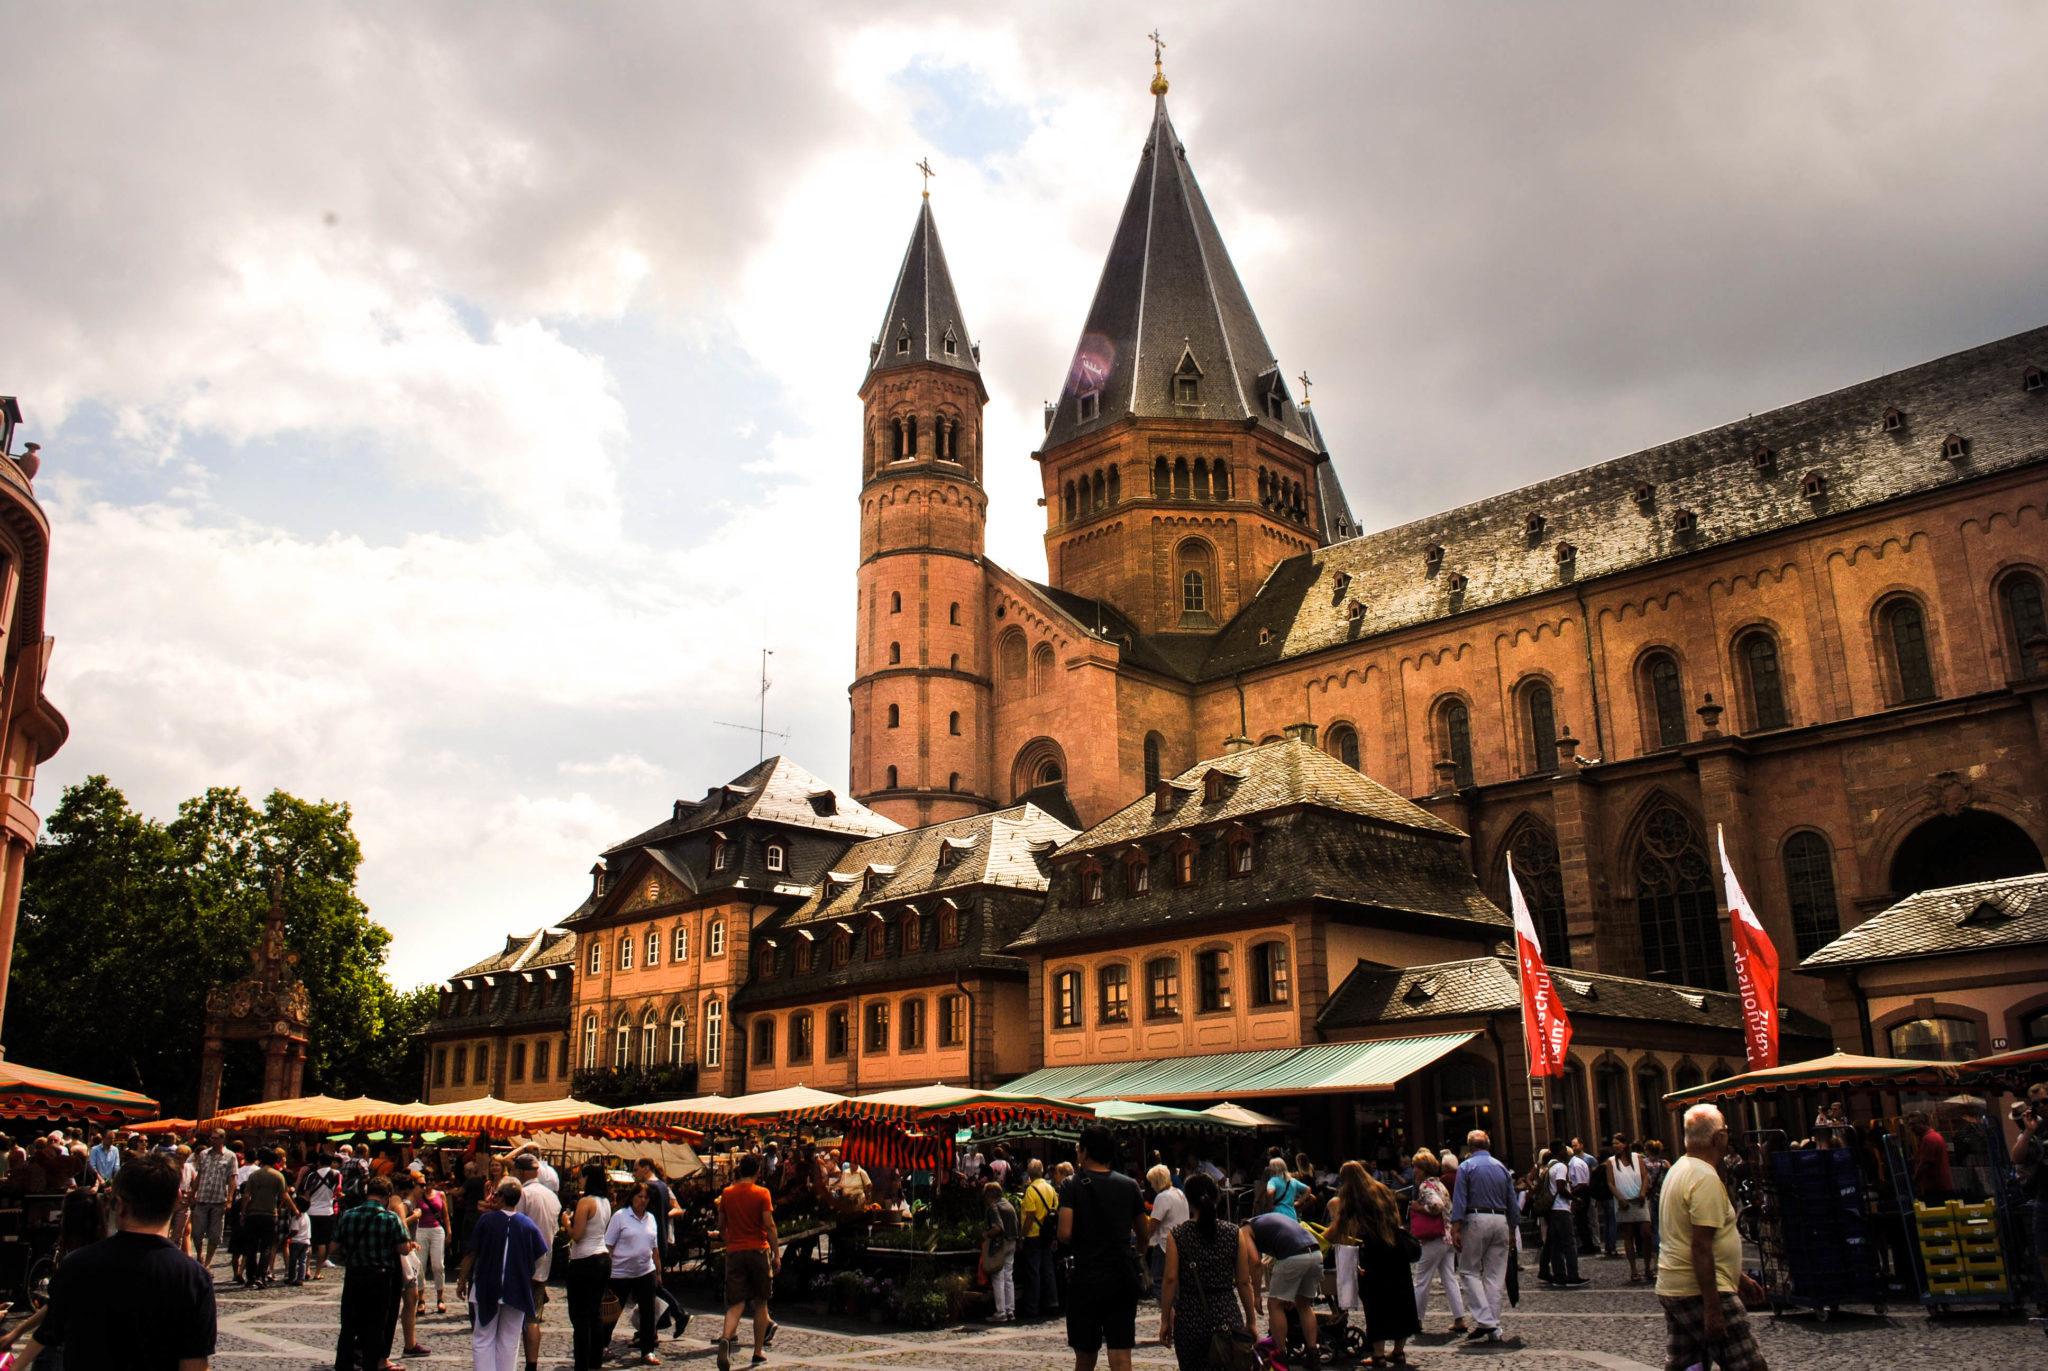 The dramatic market square in Mainz.